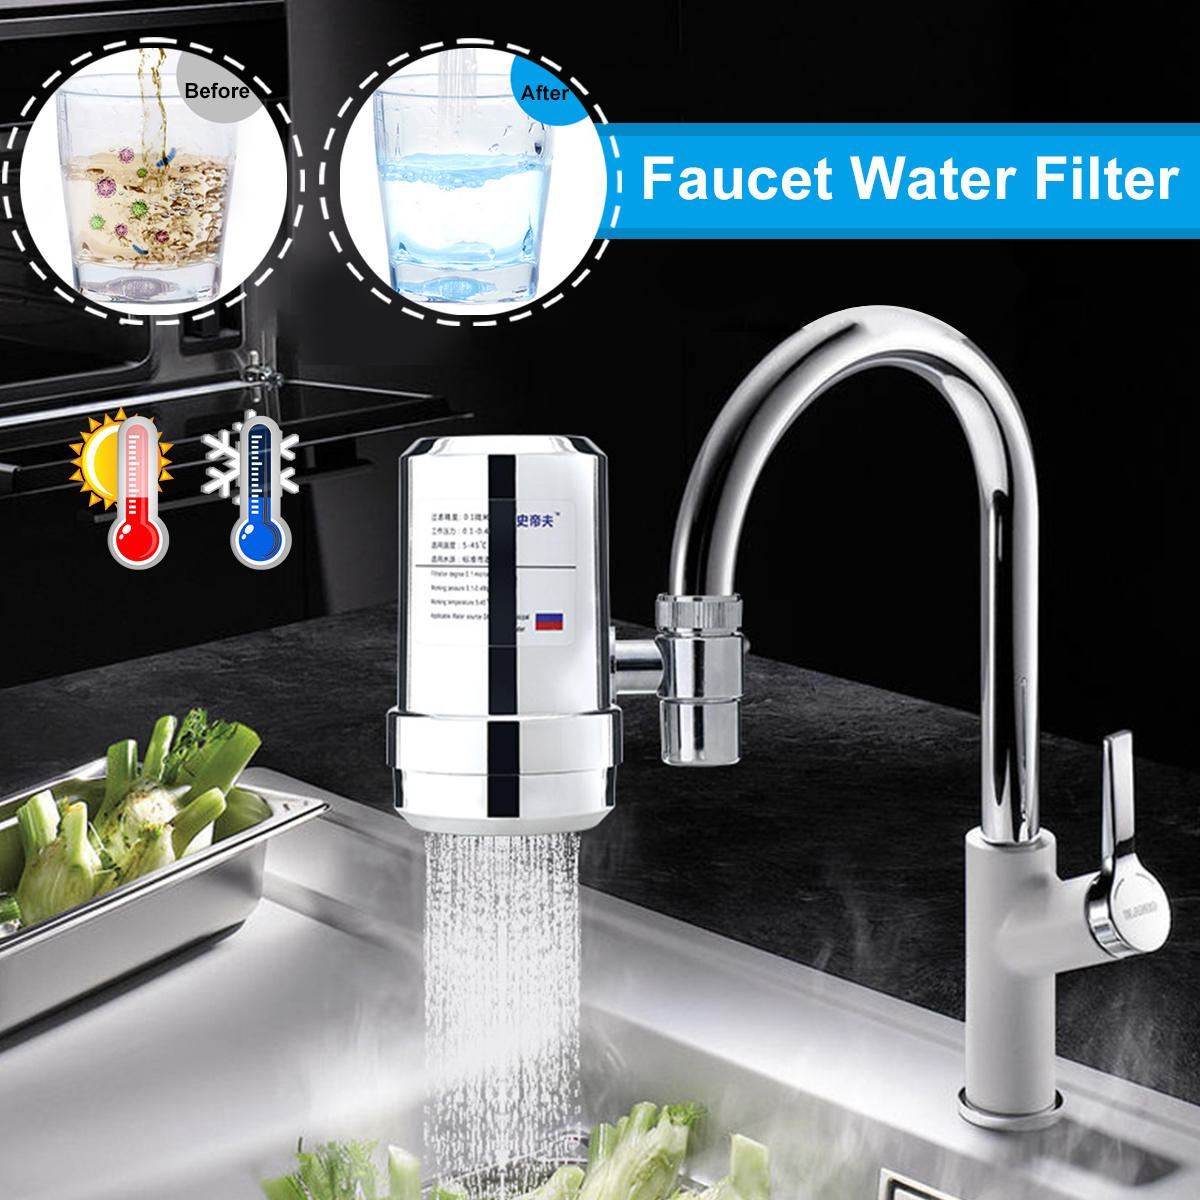 diatom mud ceramic plastic electroplated water purifier kitchen bathroom outdoor hot and cold water faucet water filter tap purifier